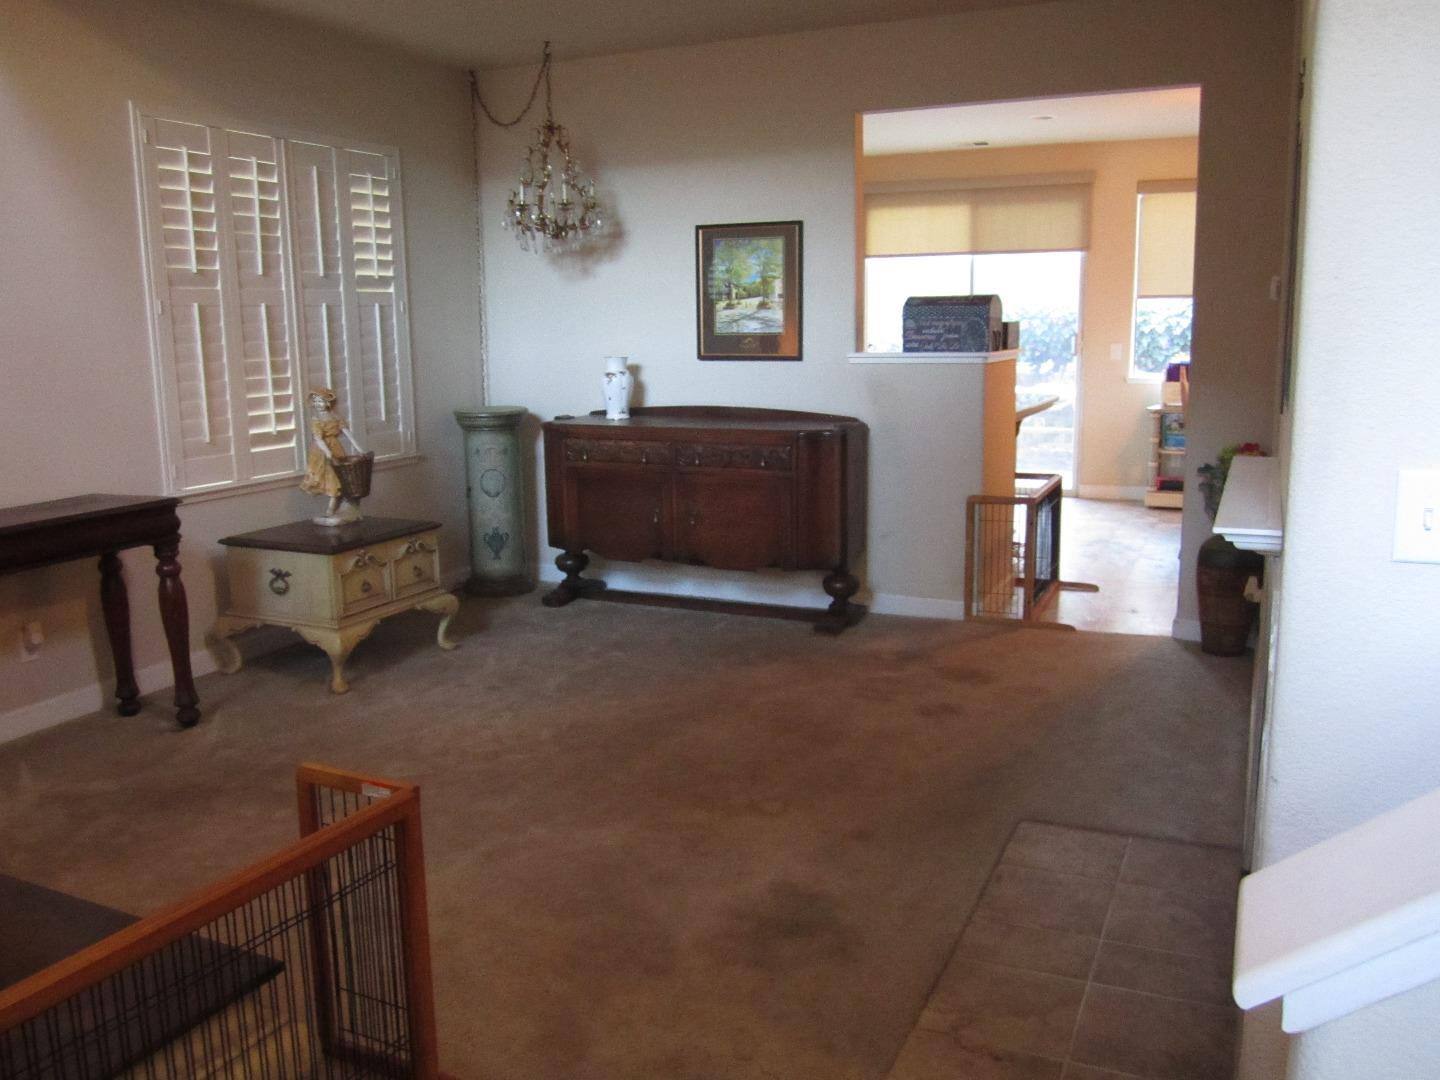 Additional photo for property listing at 254 Holland Circle  Hollister, カリフォルニア 95023 アメリカ合衆国